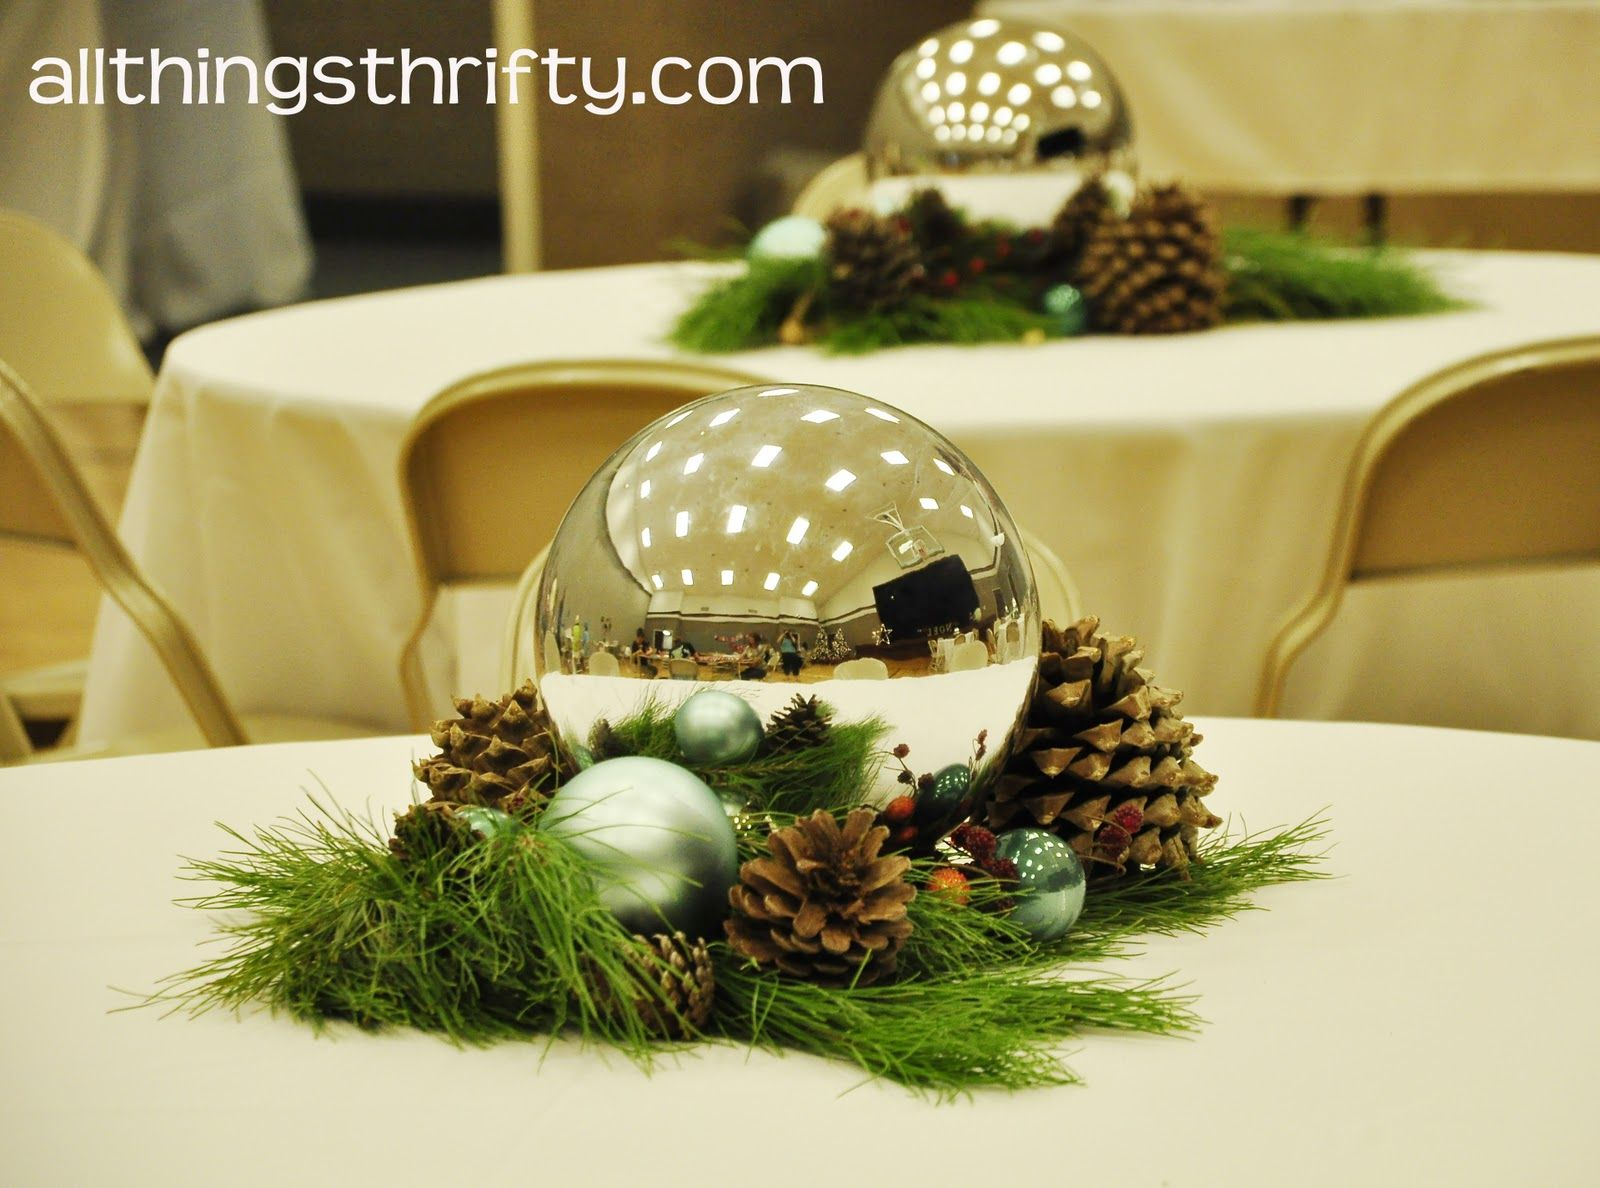 Summer clearance items ideas christmas centrepieces